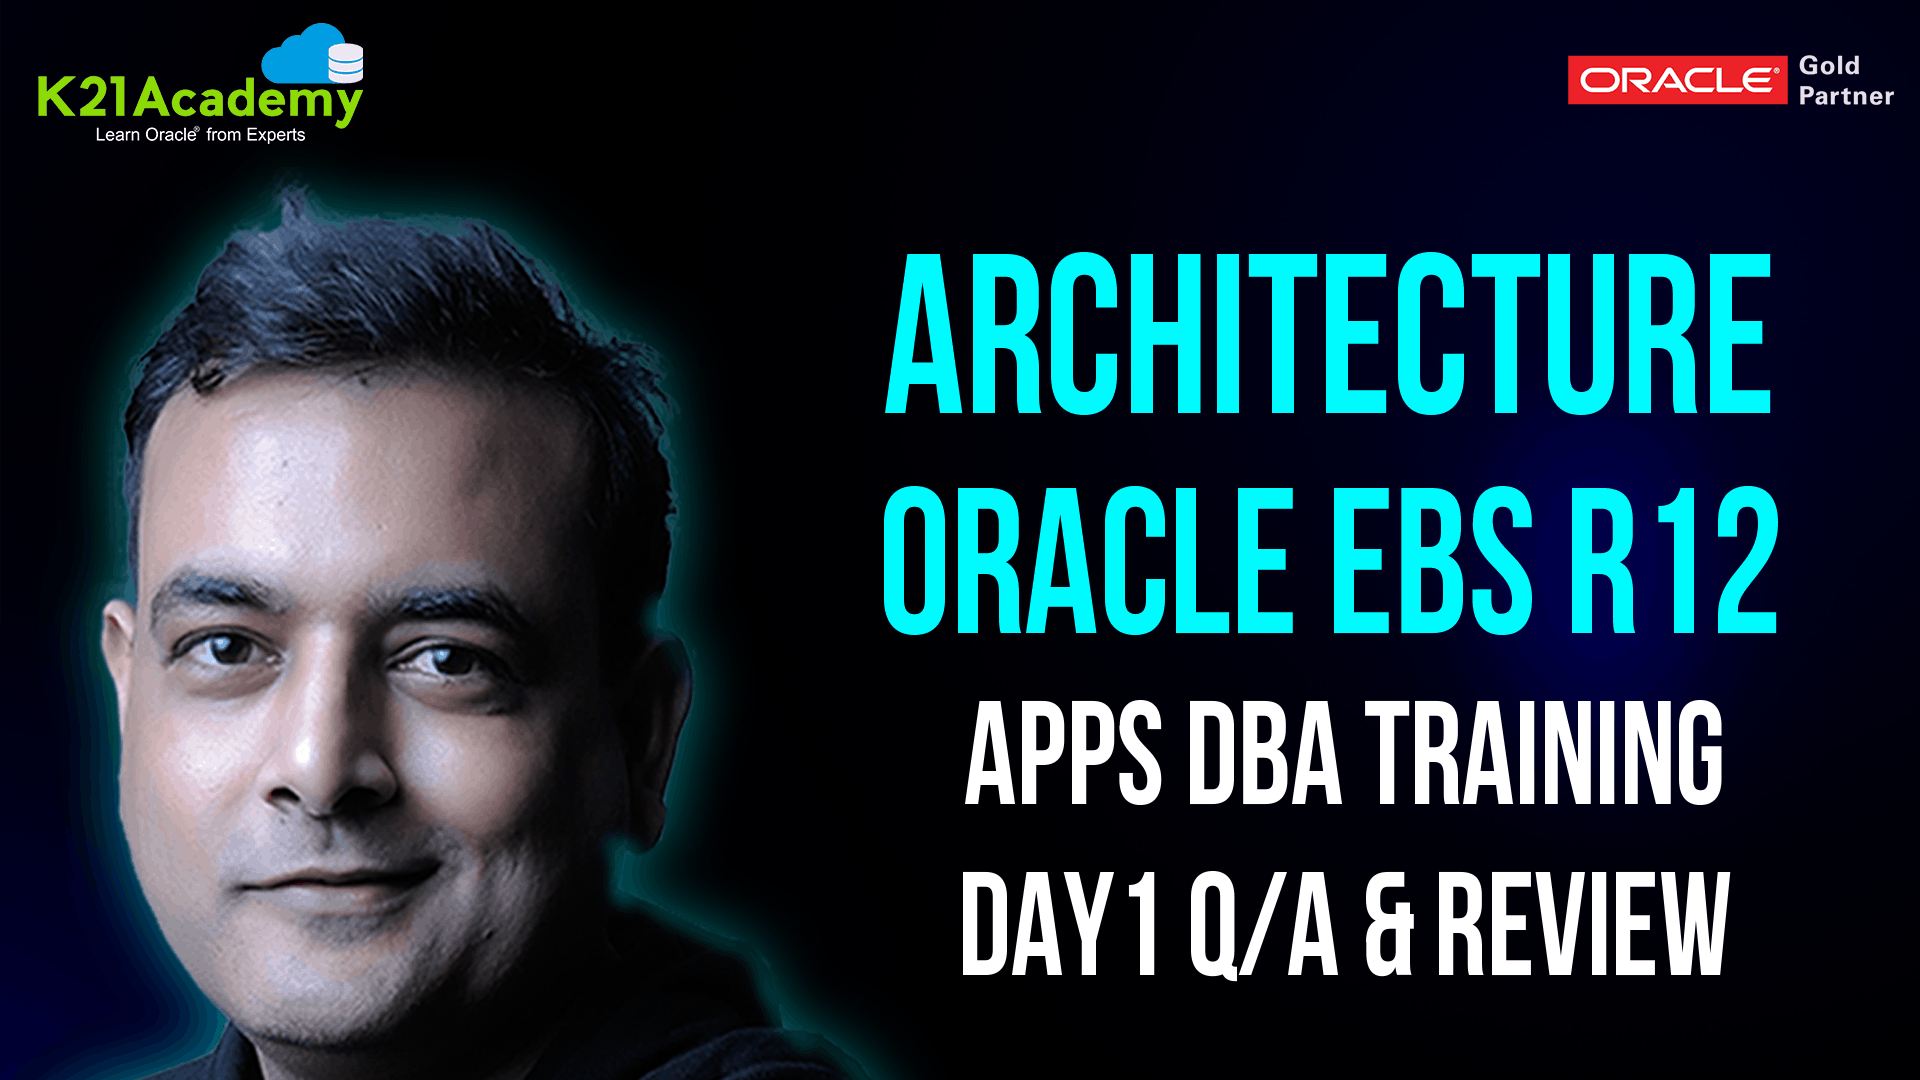 [Q/A] Oracle Apps DBA Training (R12.2) Day 1: Architecture & Changes in Oracle E-Business R12.2